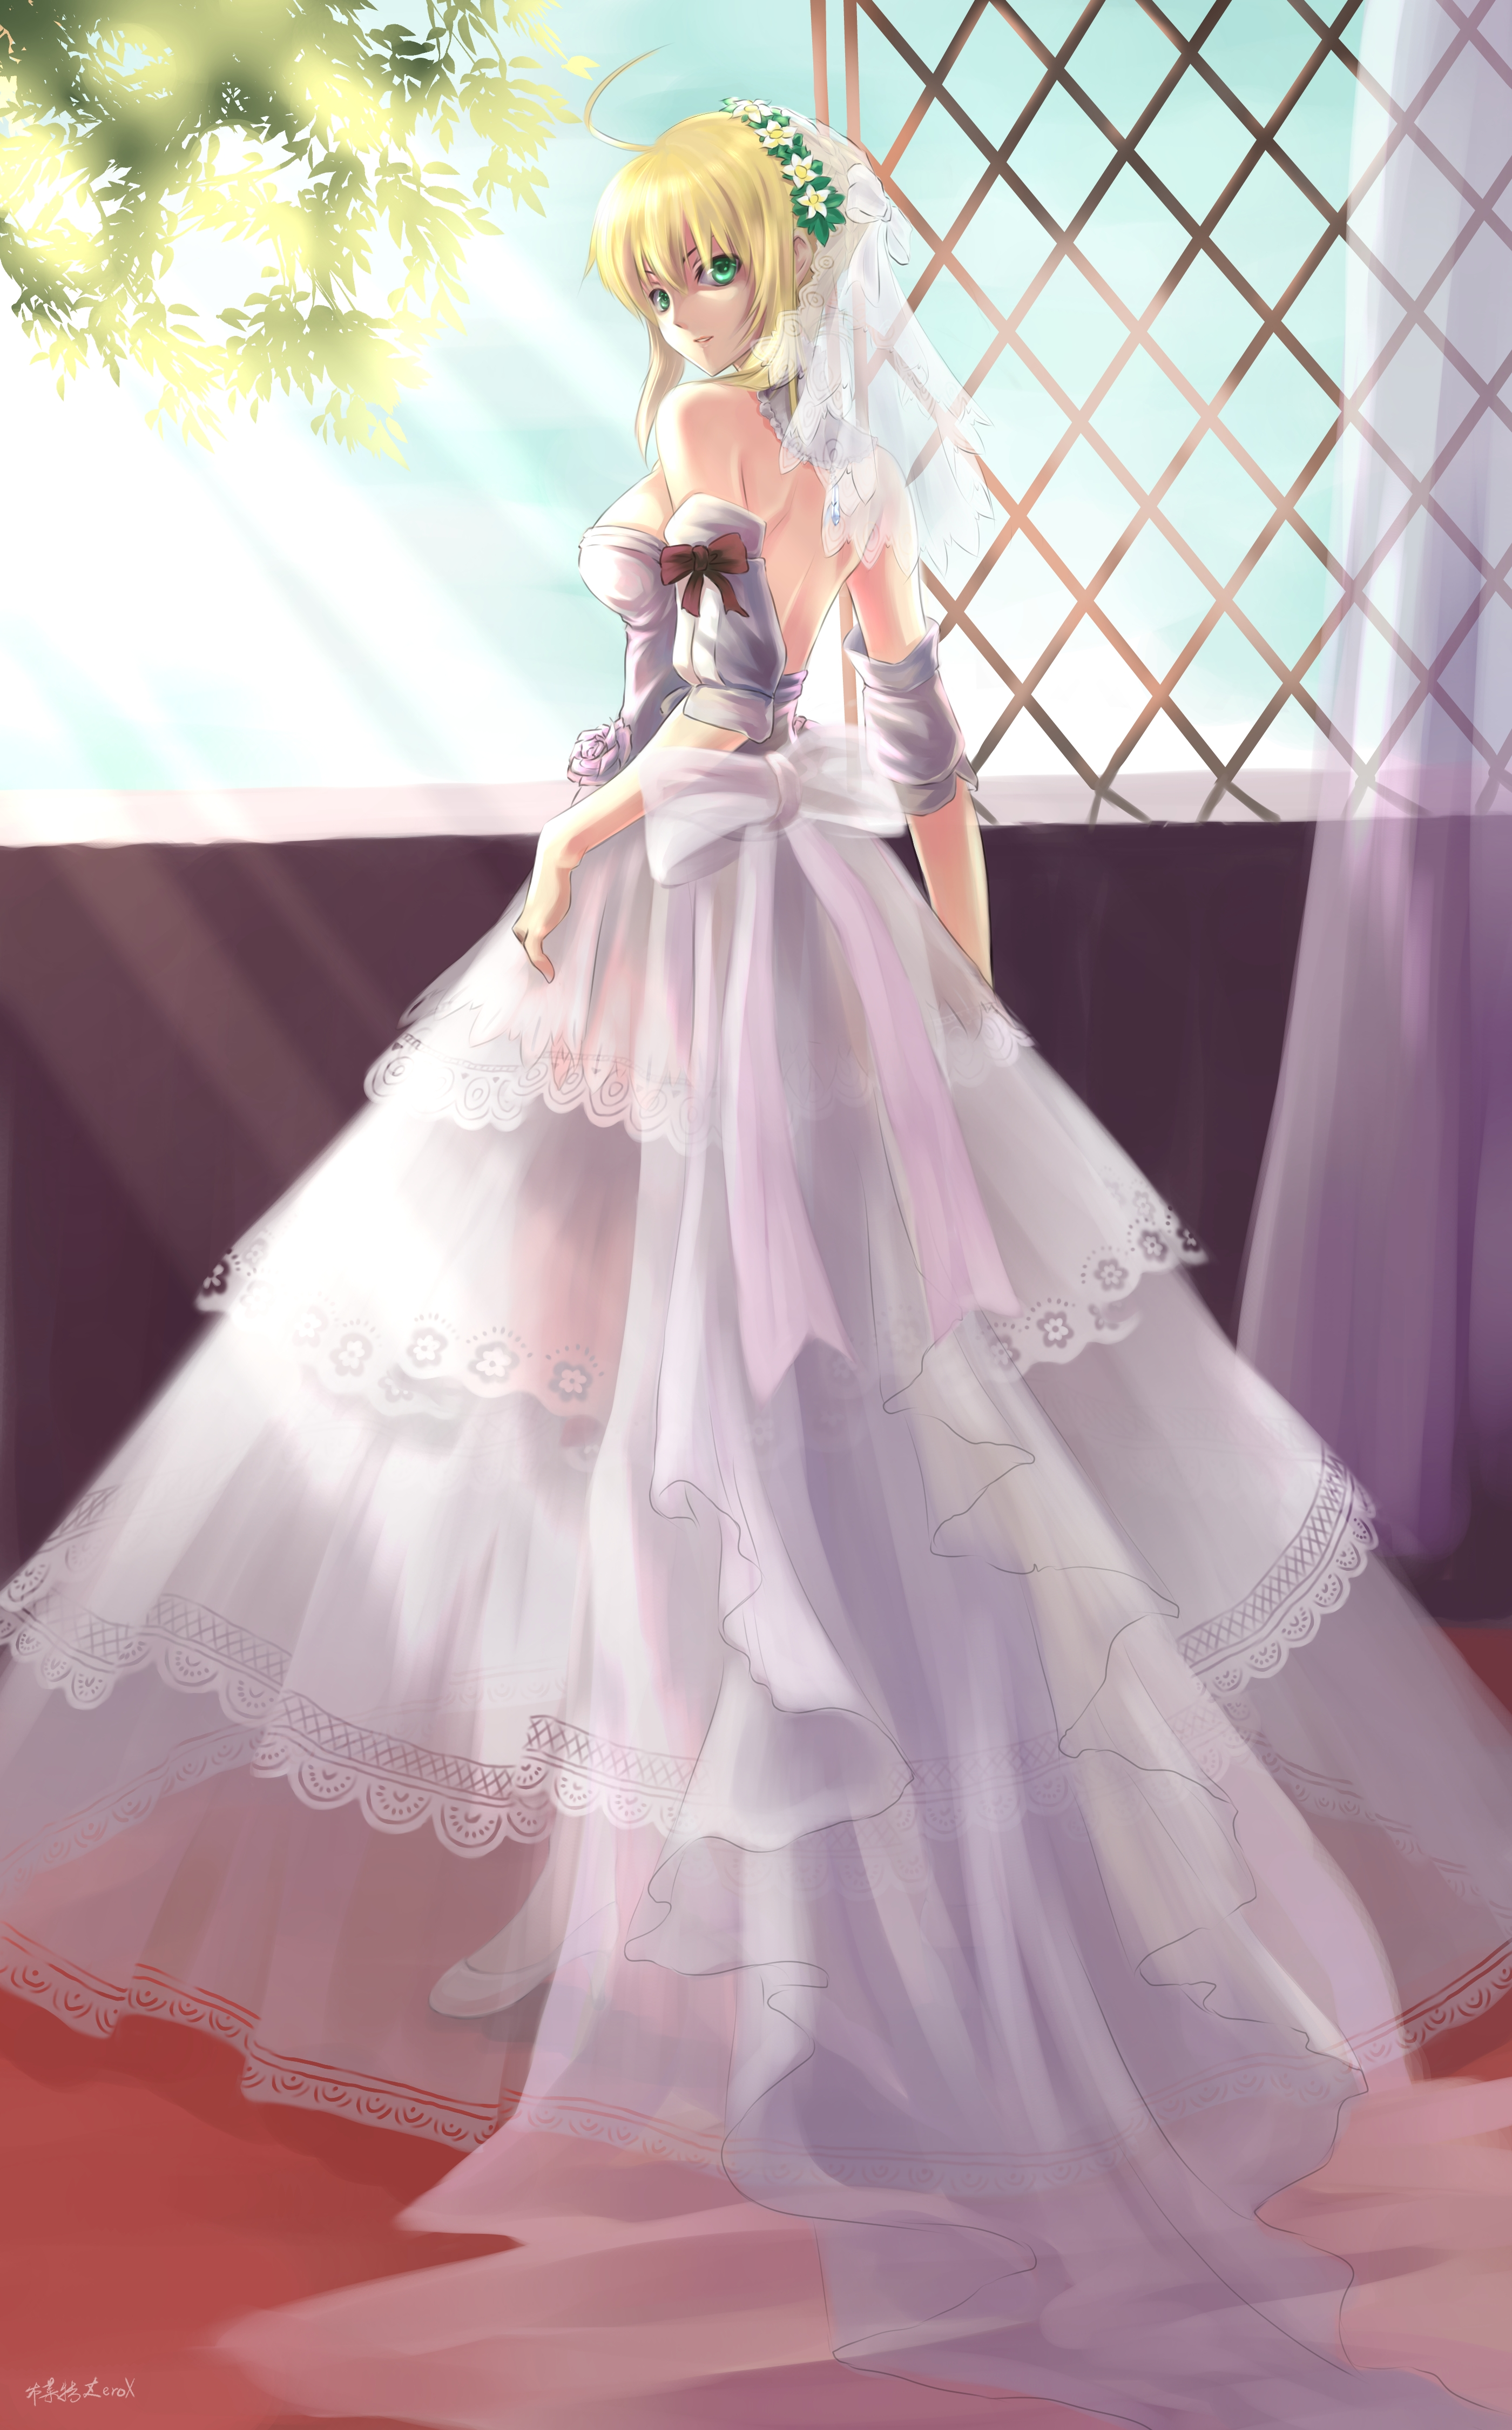 Saber fate stay night 1279502 zerochan for Night dress for wedding night